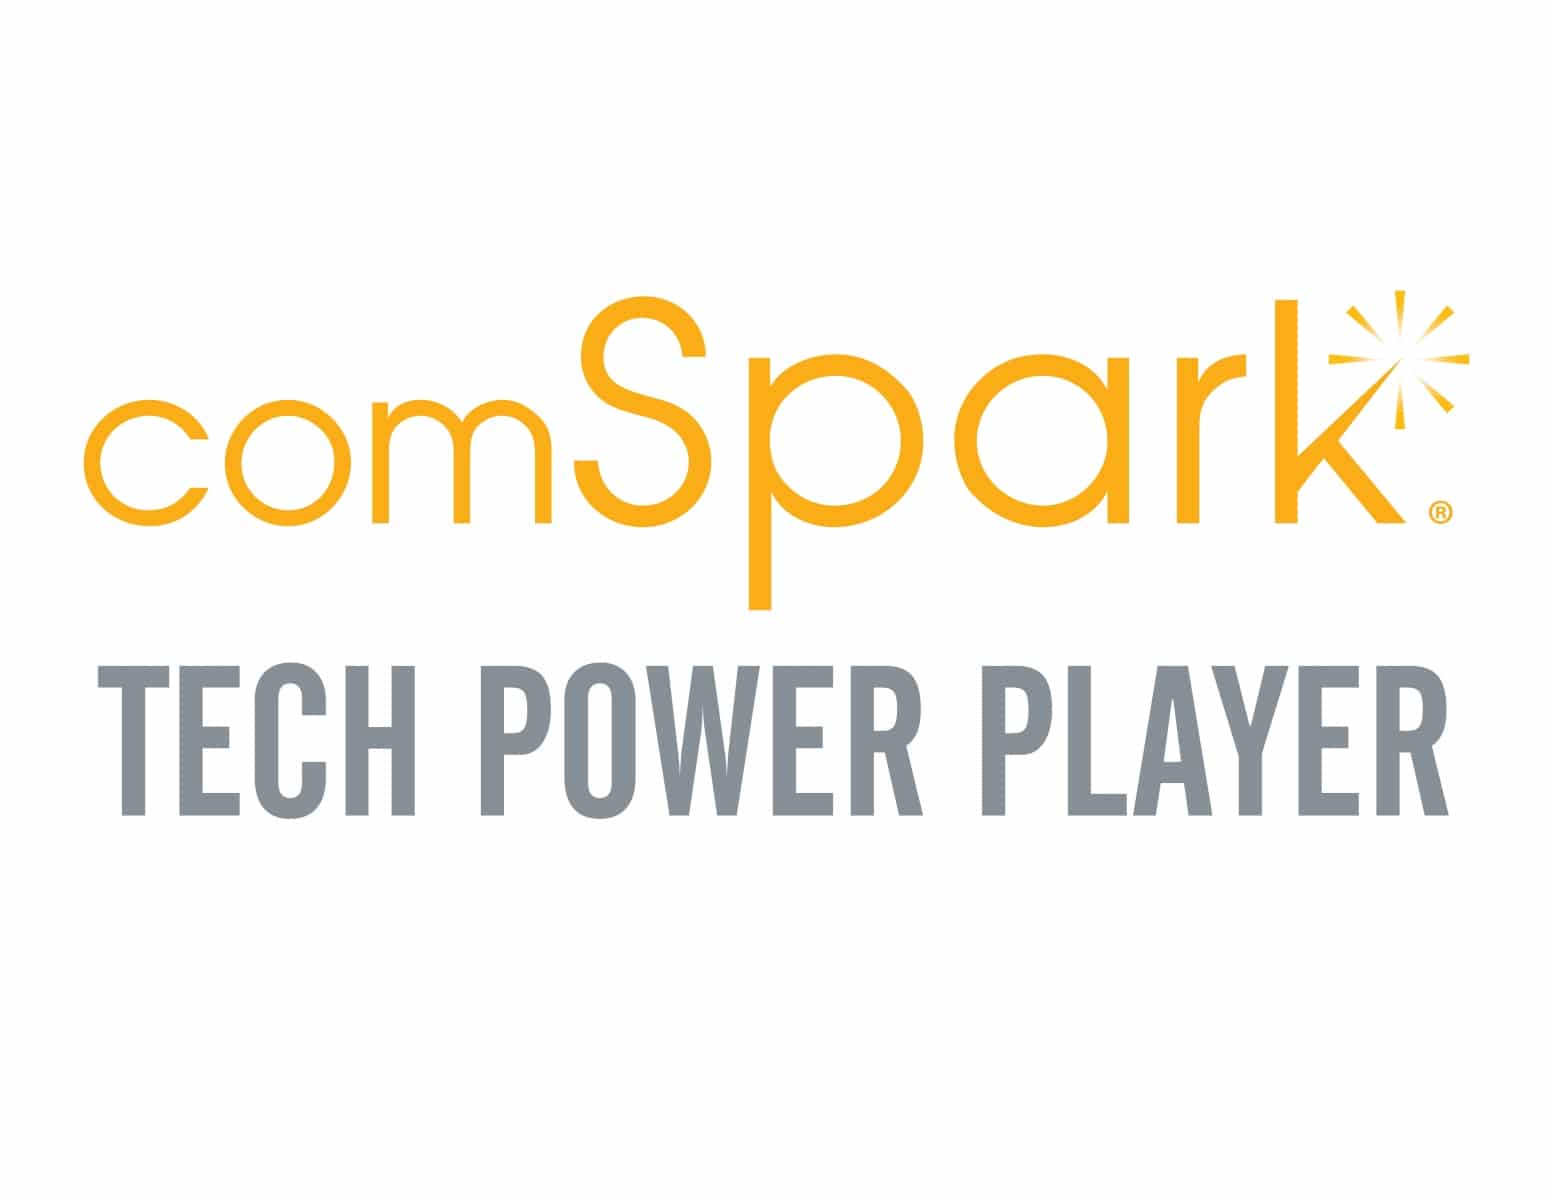 EasyIT to attend comSpark Tech Power Player Conference and Awards – November 12, 2019